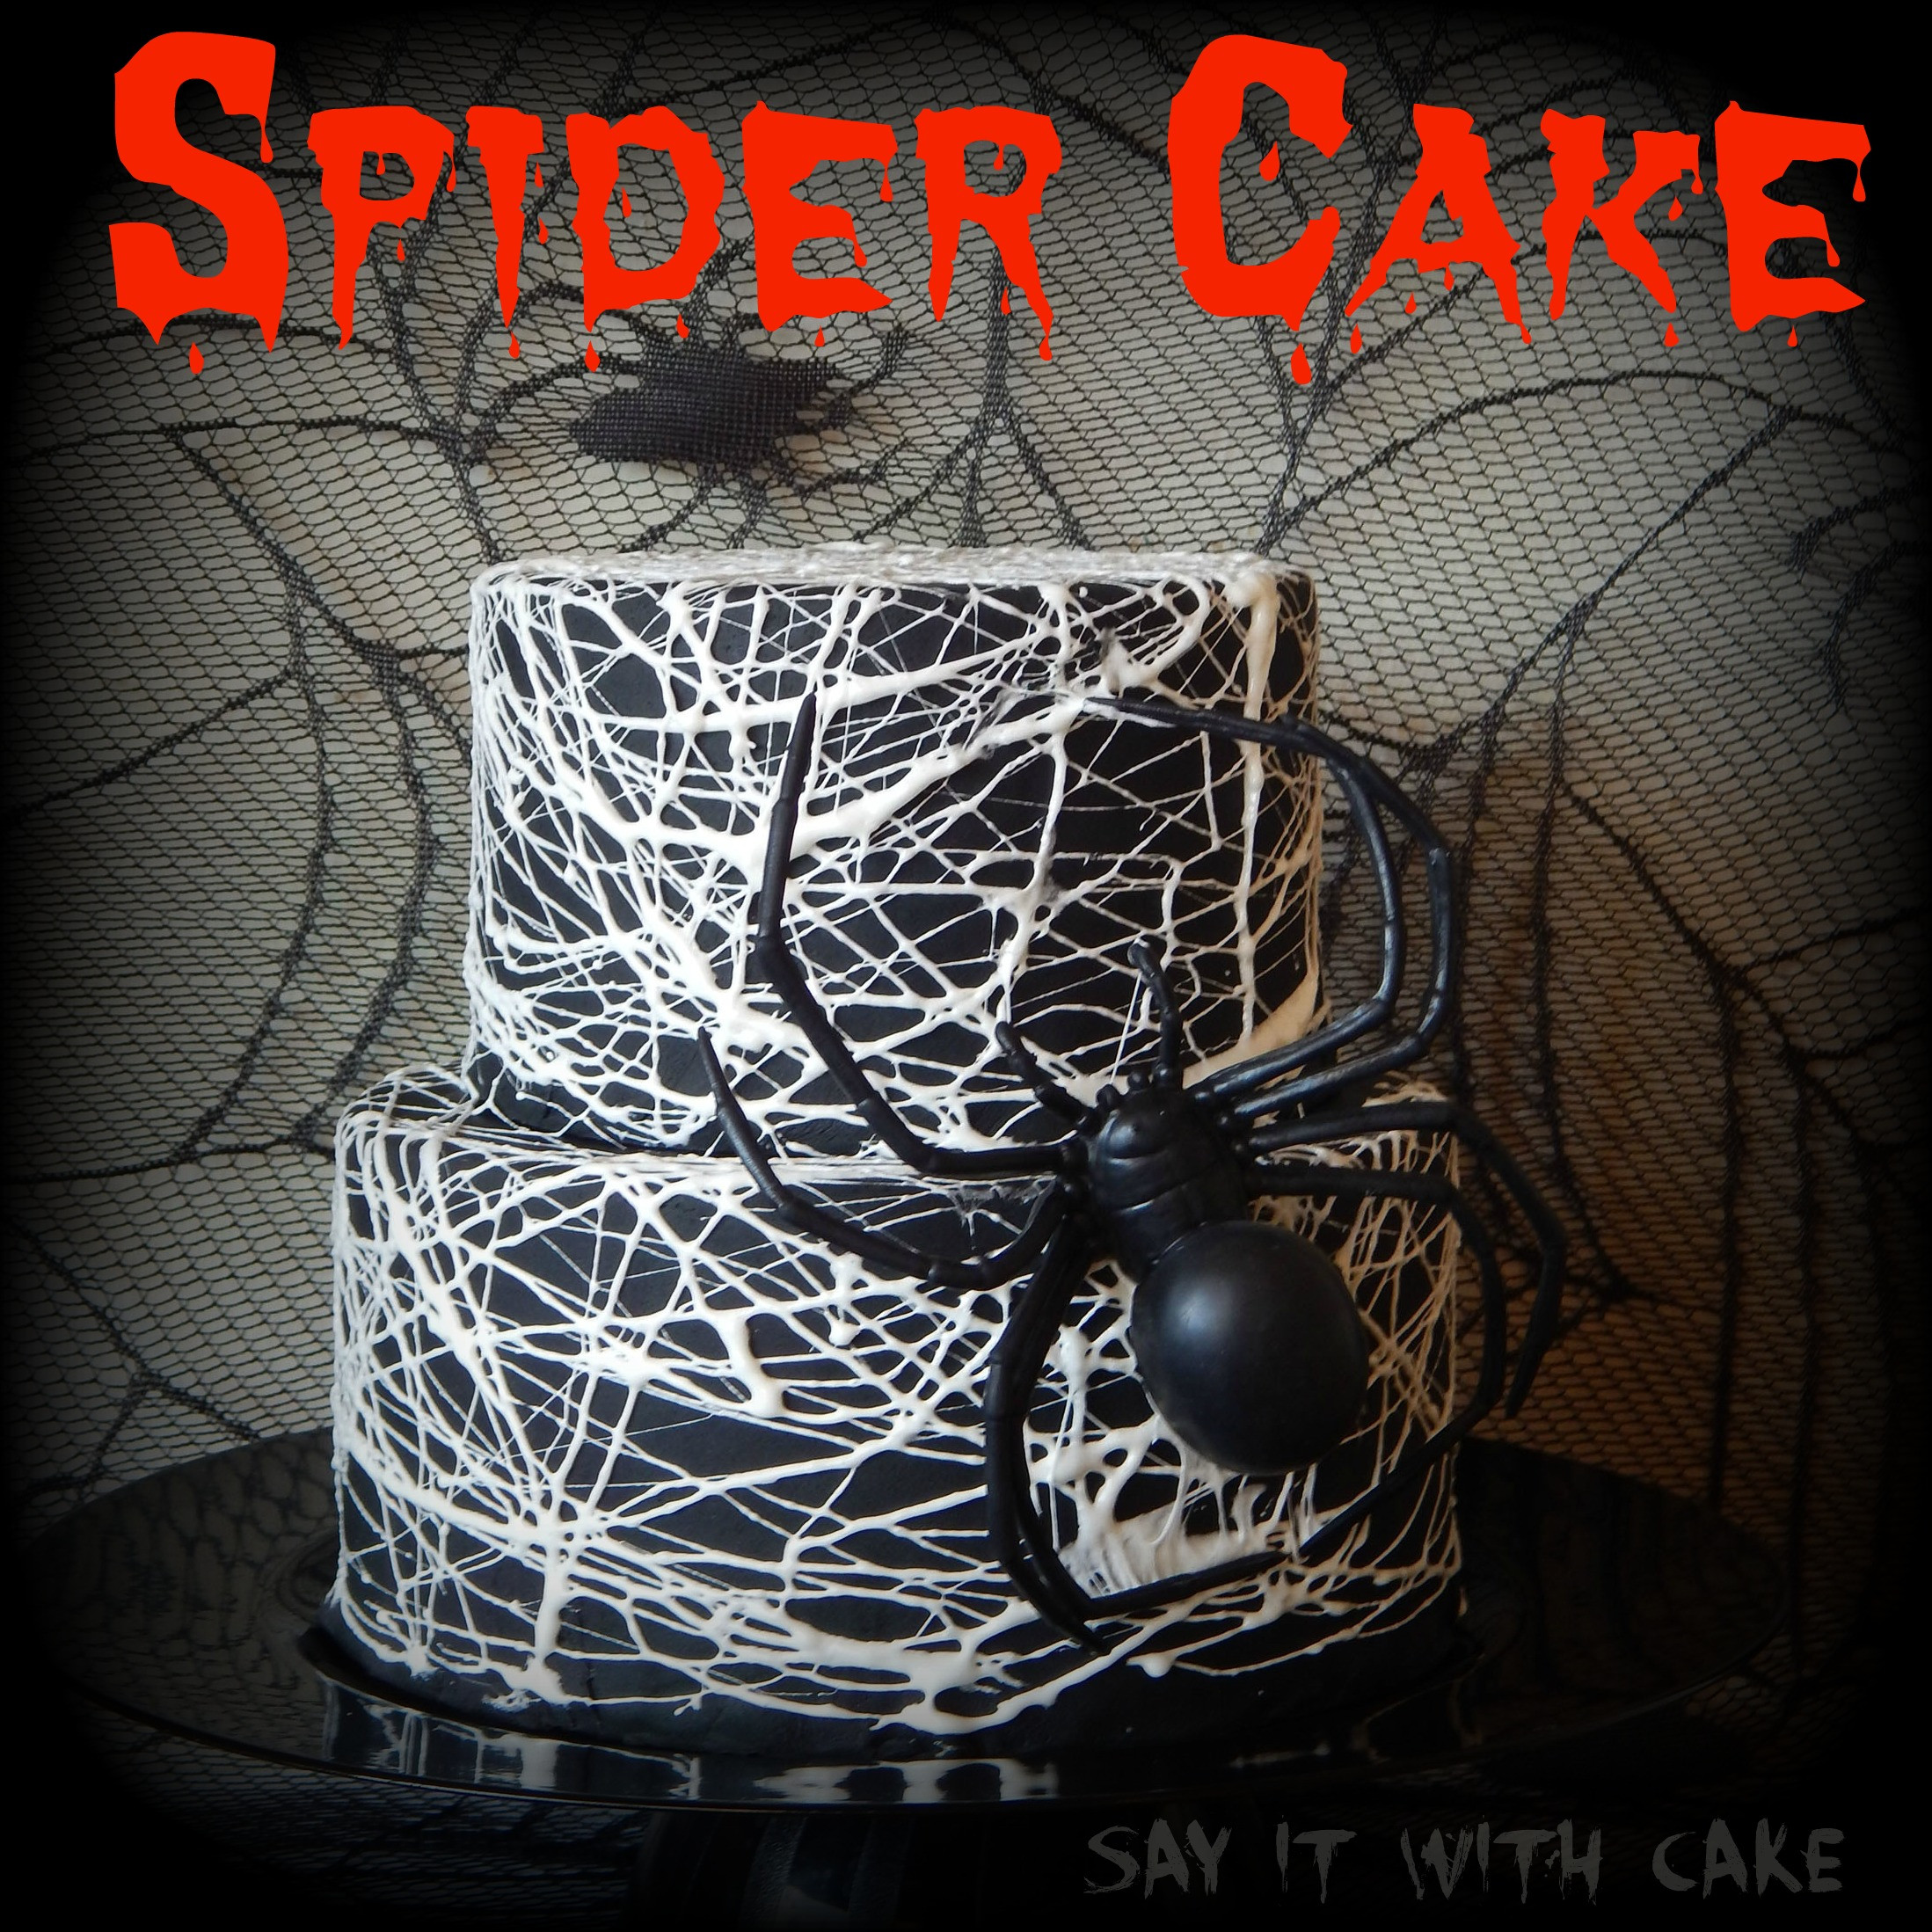 Halloween Spider Cakes  Spider Web Cake – Say it With Cake